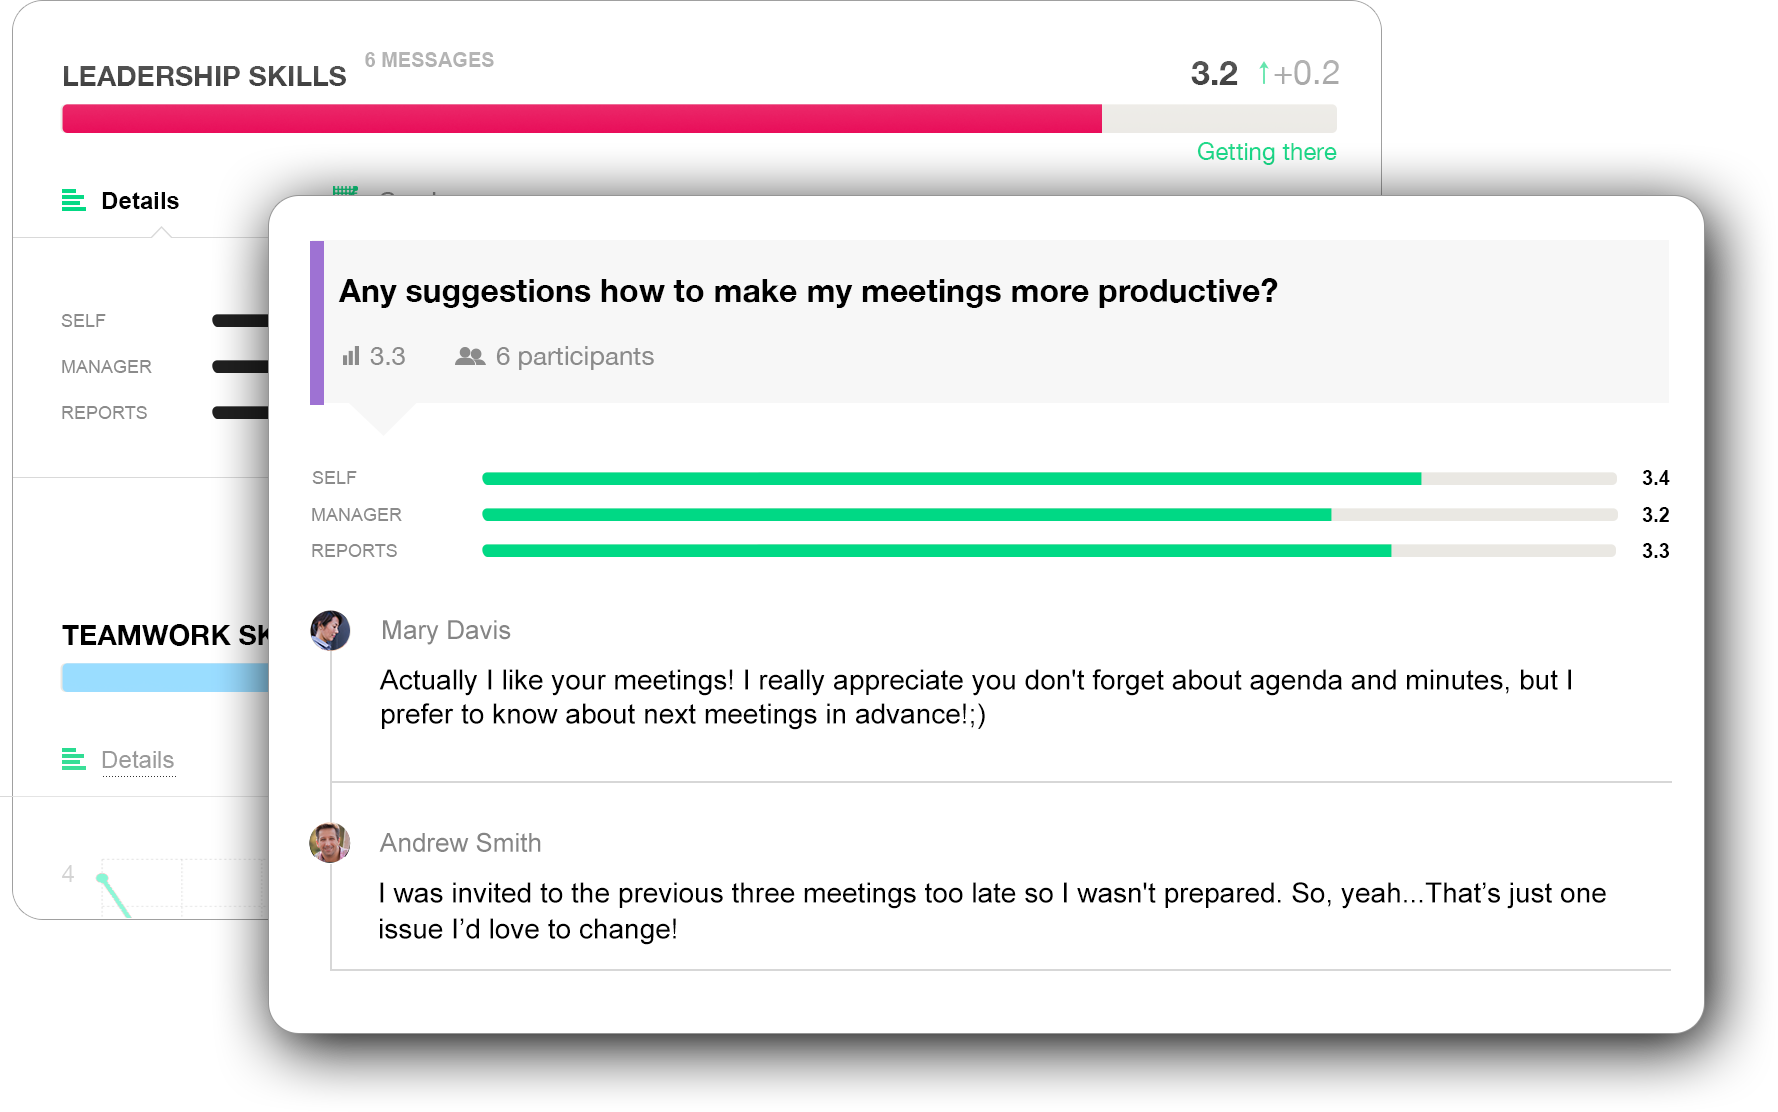 Real-time feedback between colleagues